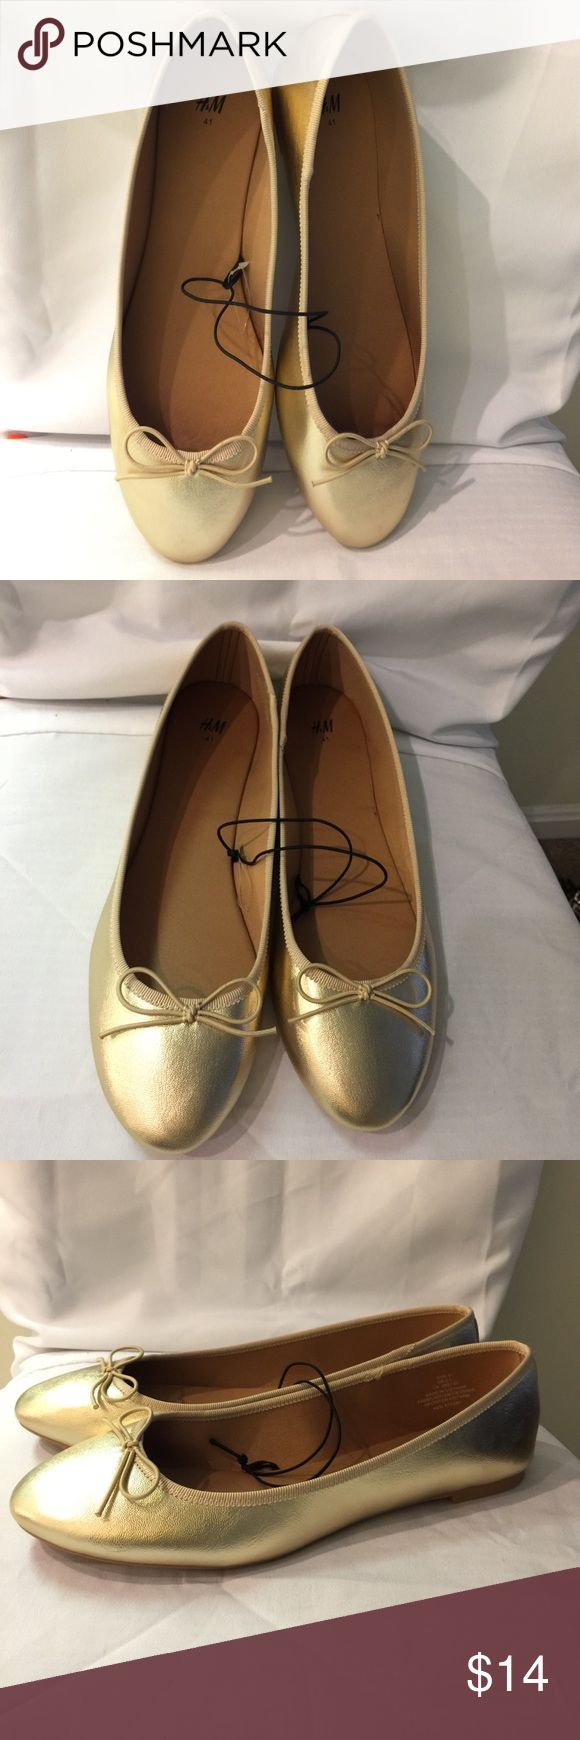 New H&M Gold metallic ballet flats with bow Great staple for closet. Shiny metallic gold flats. Tan interior. Great for work or play. Round toe. Bow at the toe. No trades. Reasonable offers welcome H&M Shoes